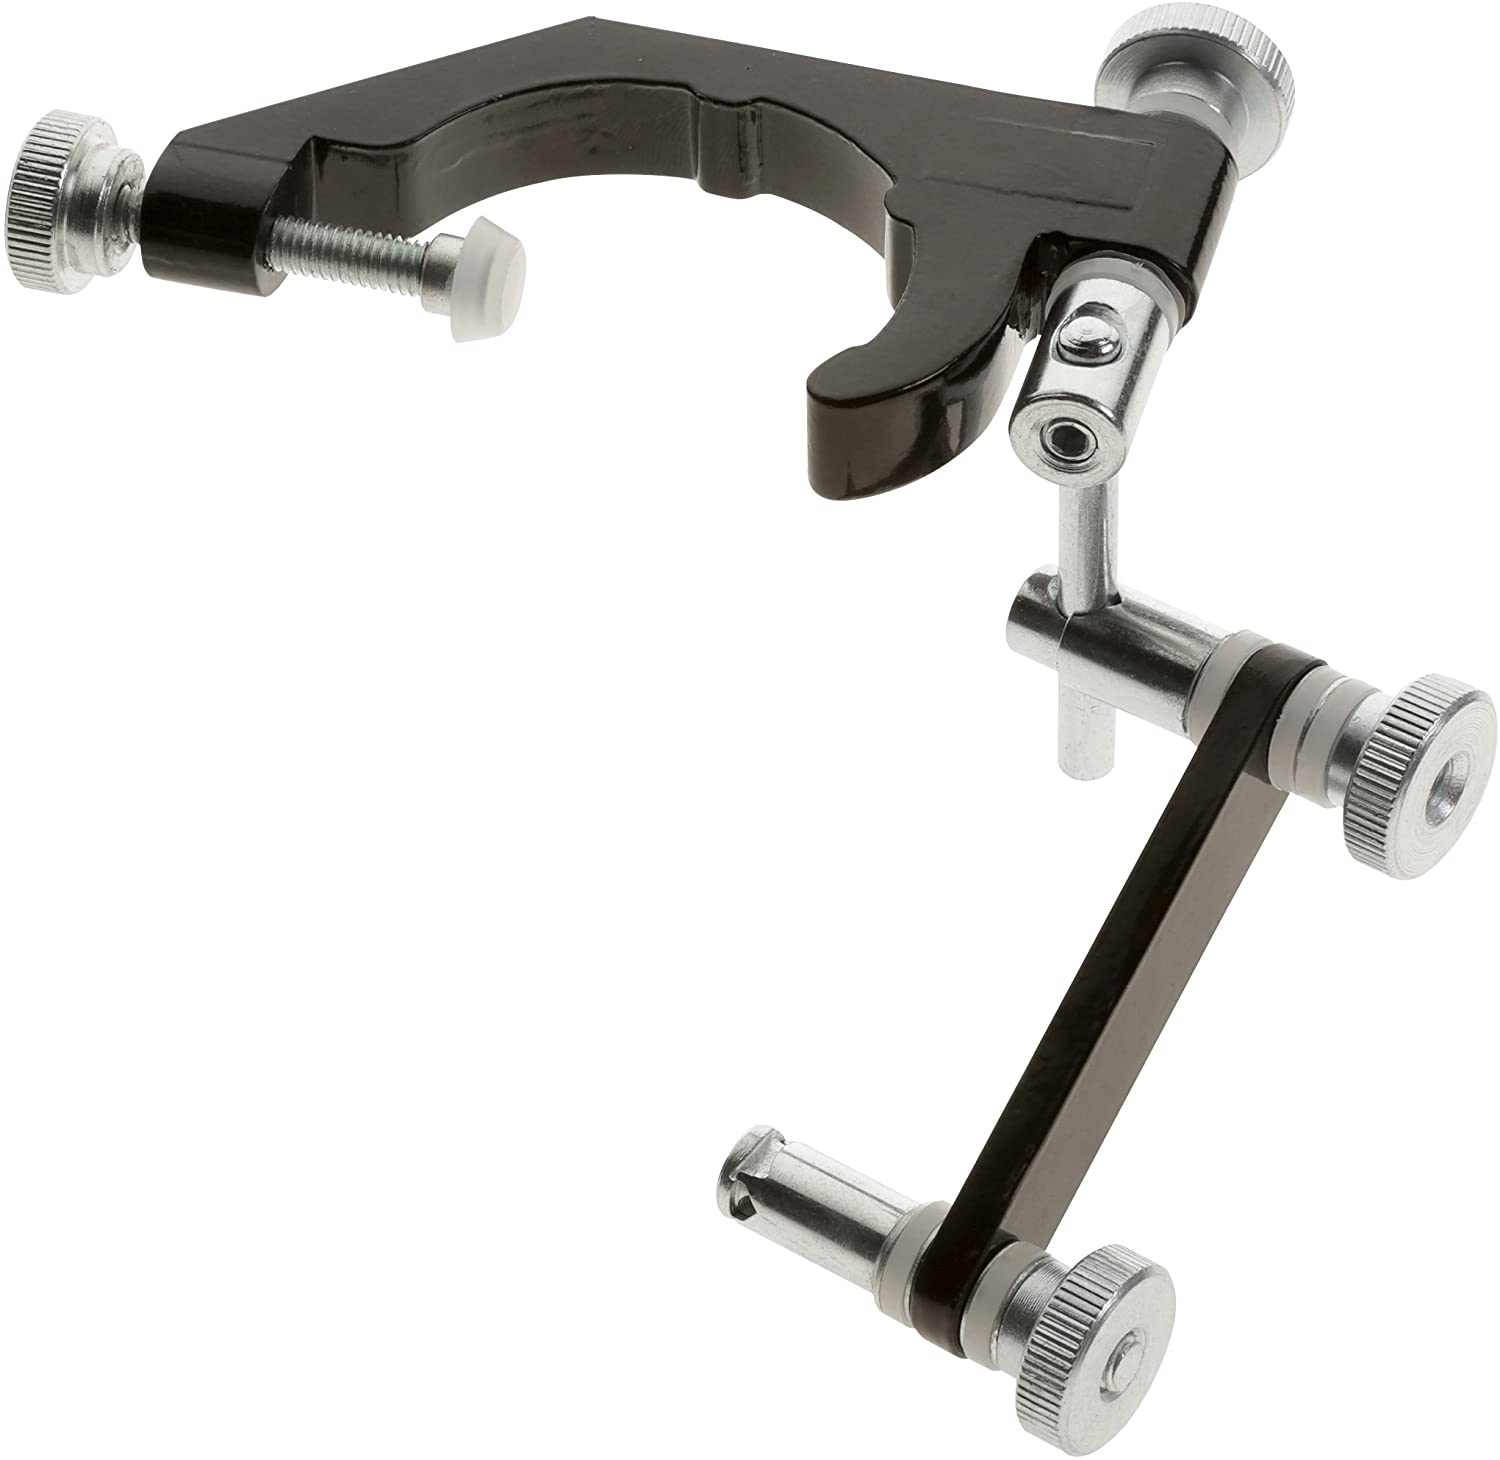 Grizzly G9629 Universa Indicator Holder